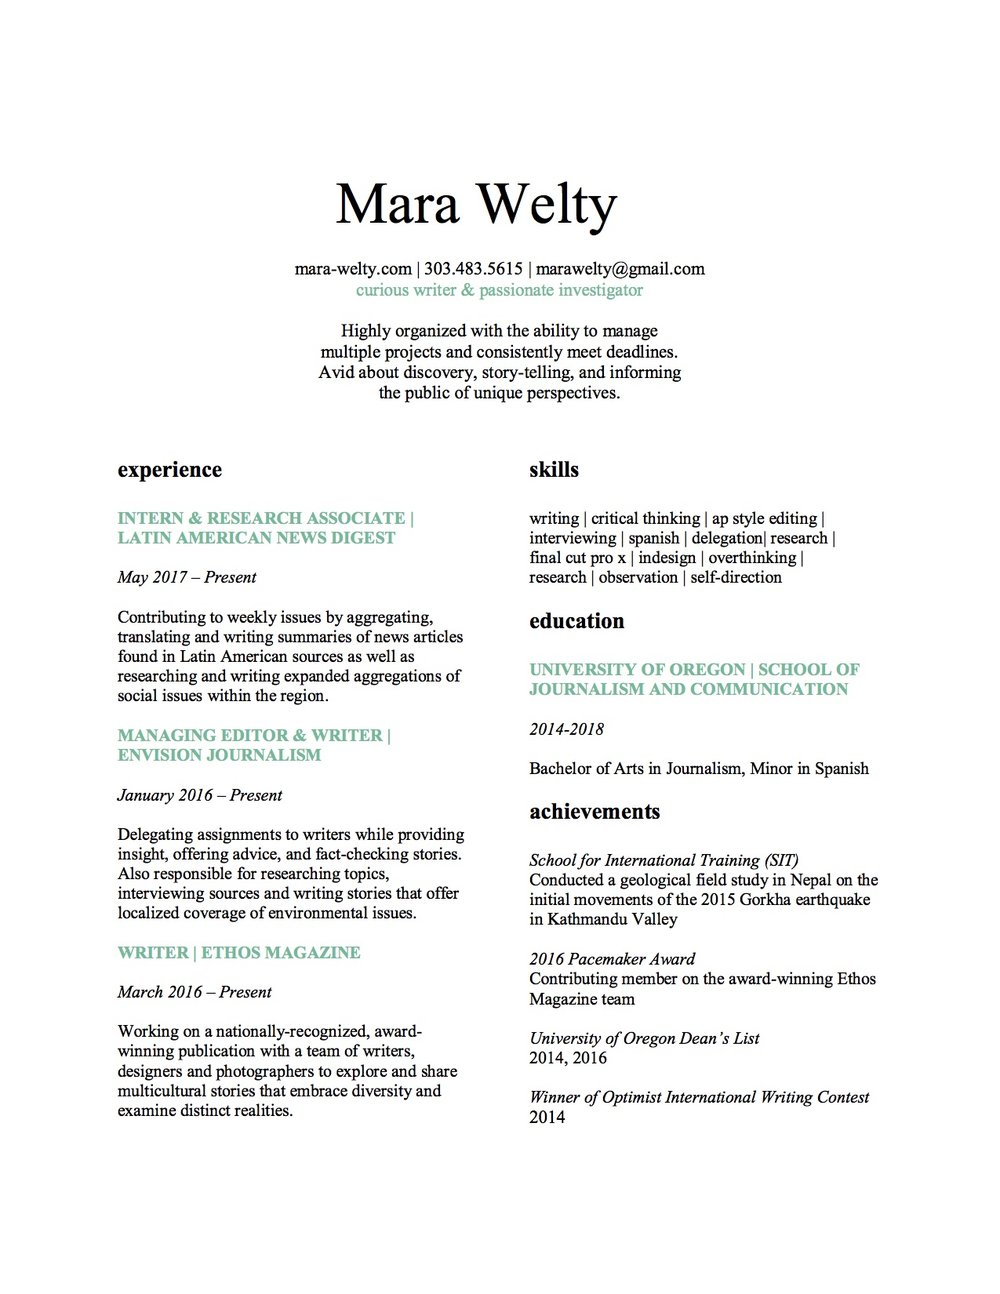 Resume Mara Welty